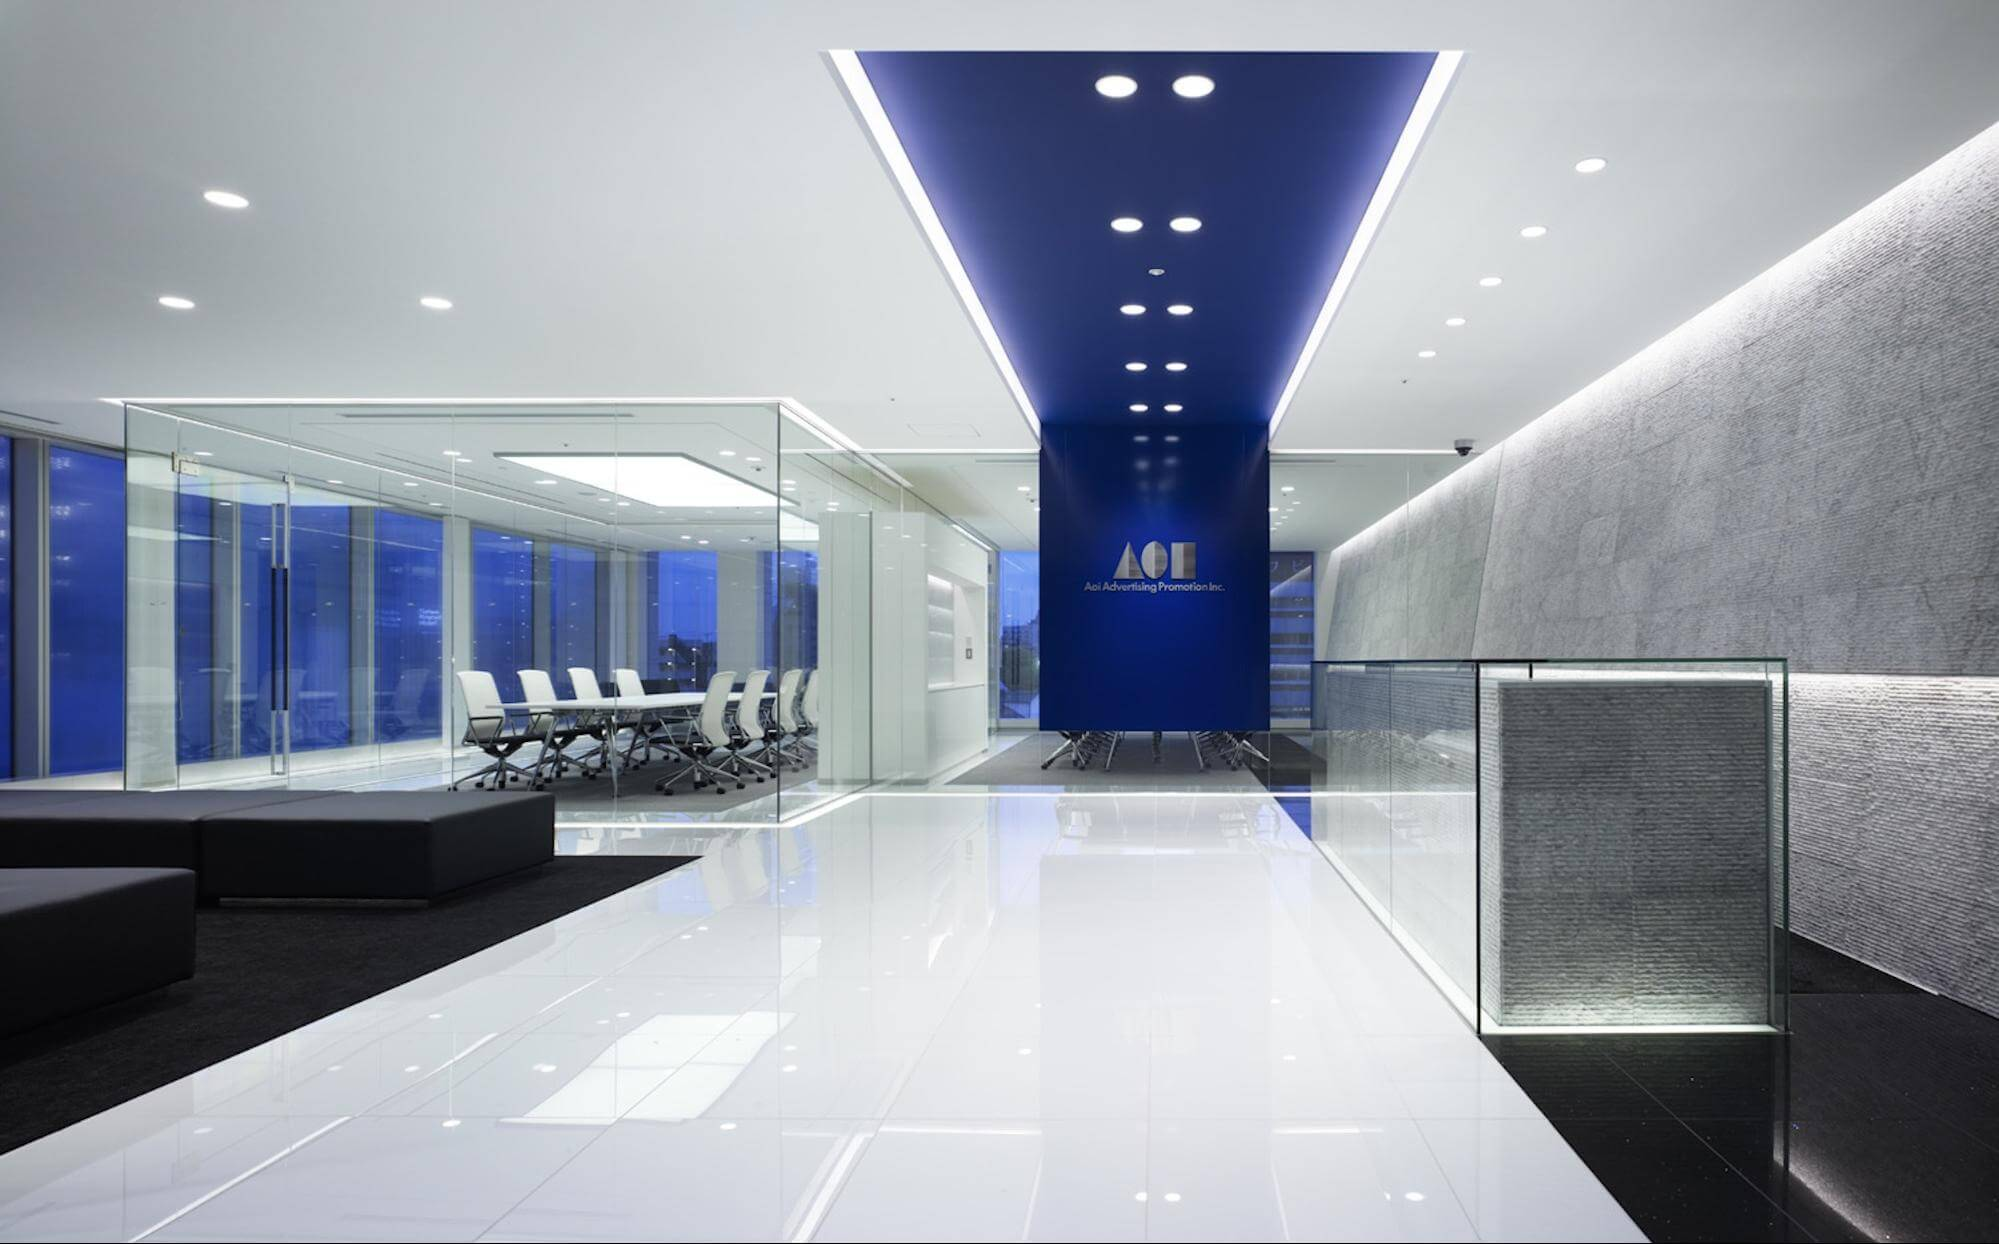 This professional-looking lobby illustrates the importance of brand design in creating impressions.